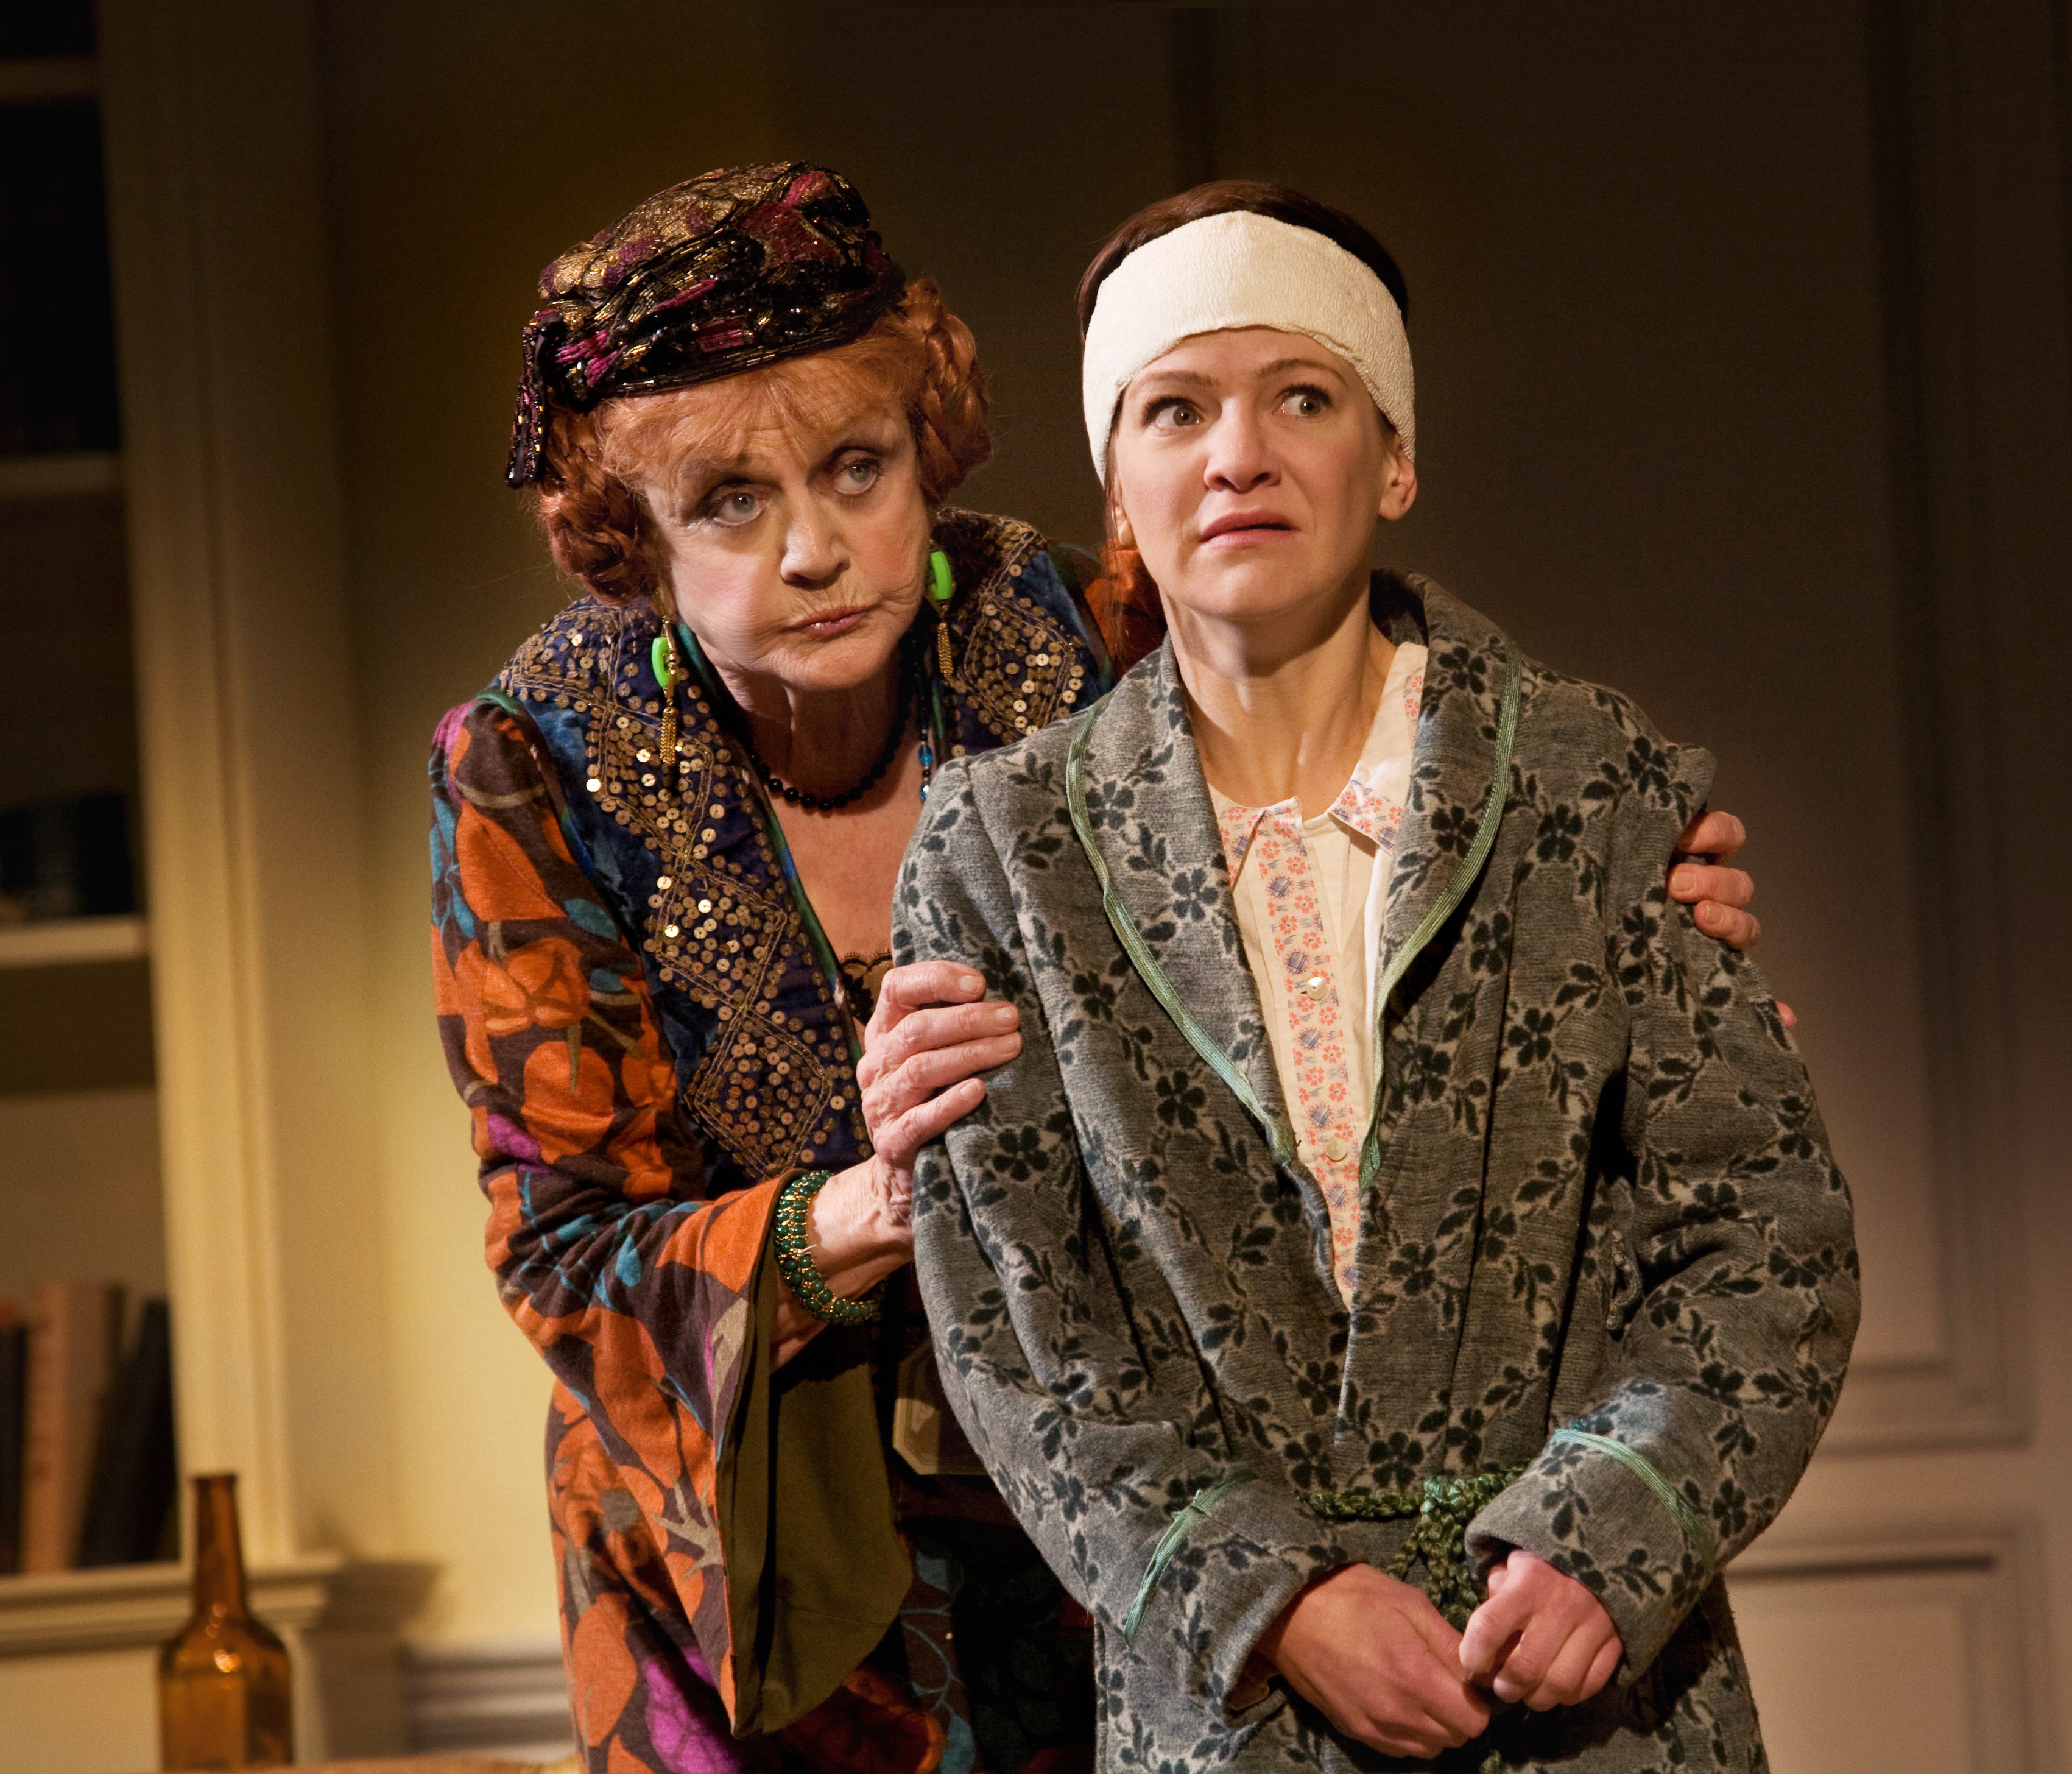 Review: Lansbury brings grace and charm to Coward's classic 'Blithe Spirit'  – Bay Area Plays